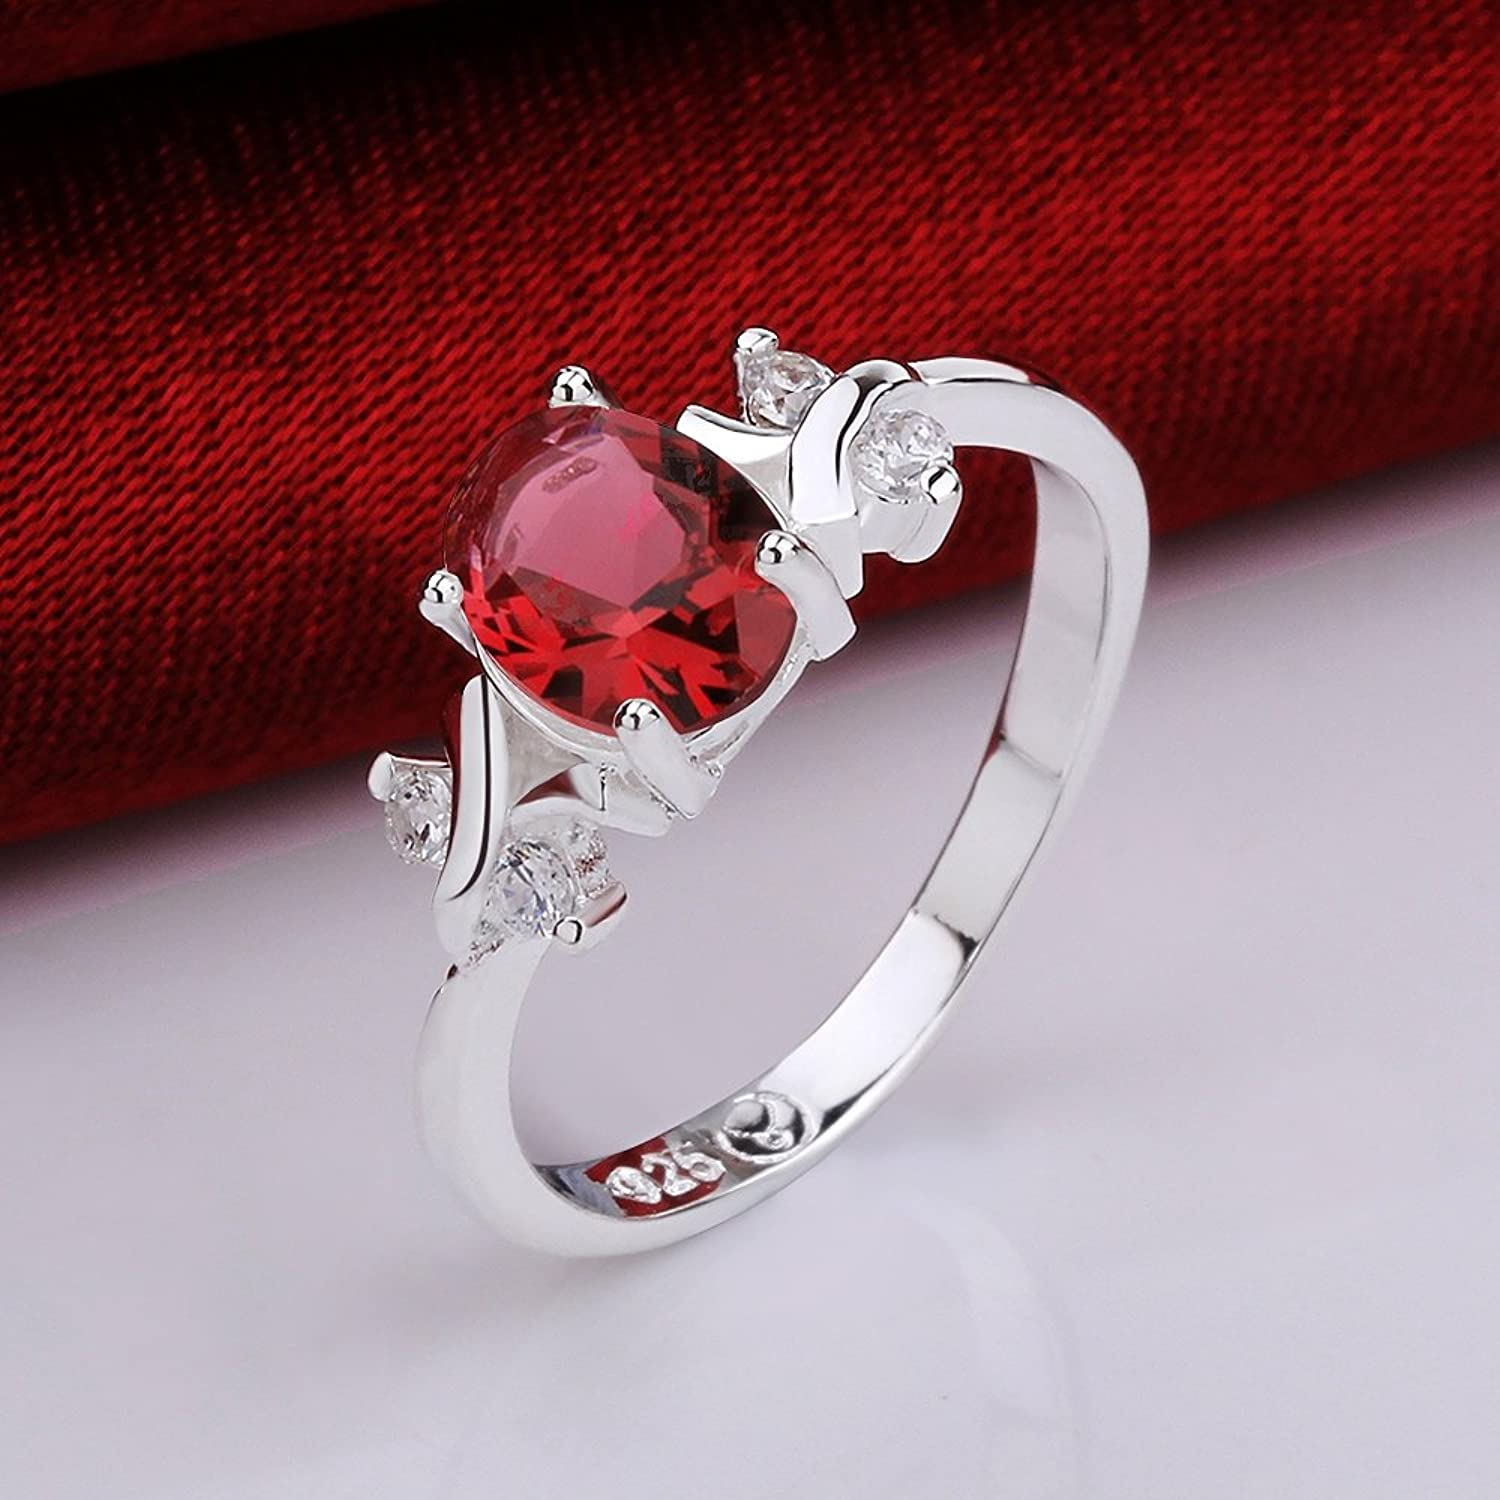 dragon rock for rings red jewelry style party products head stone men ring punk